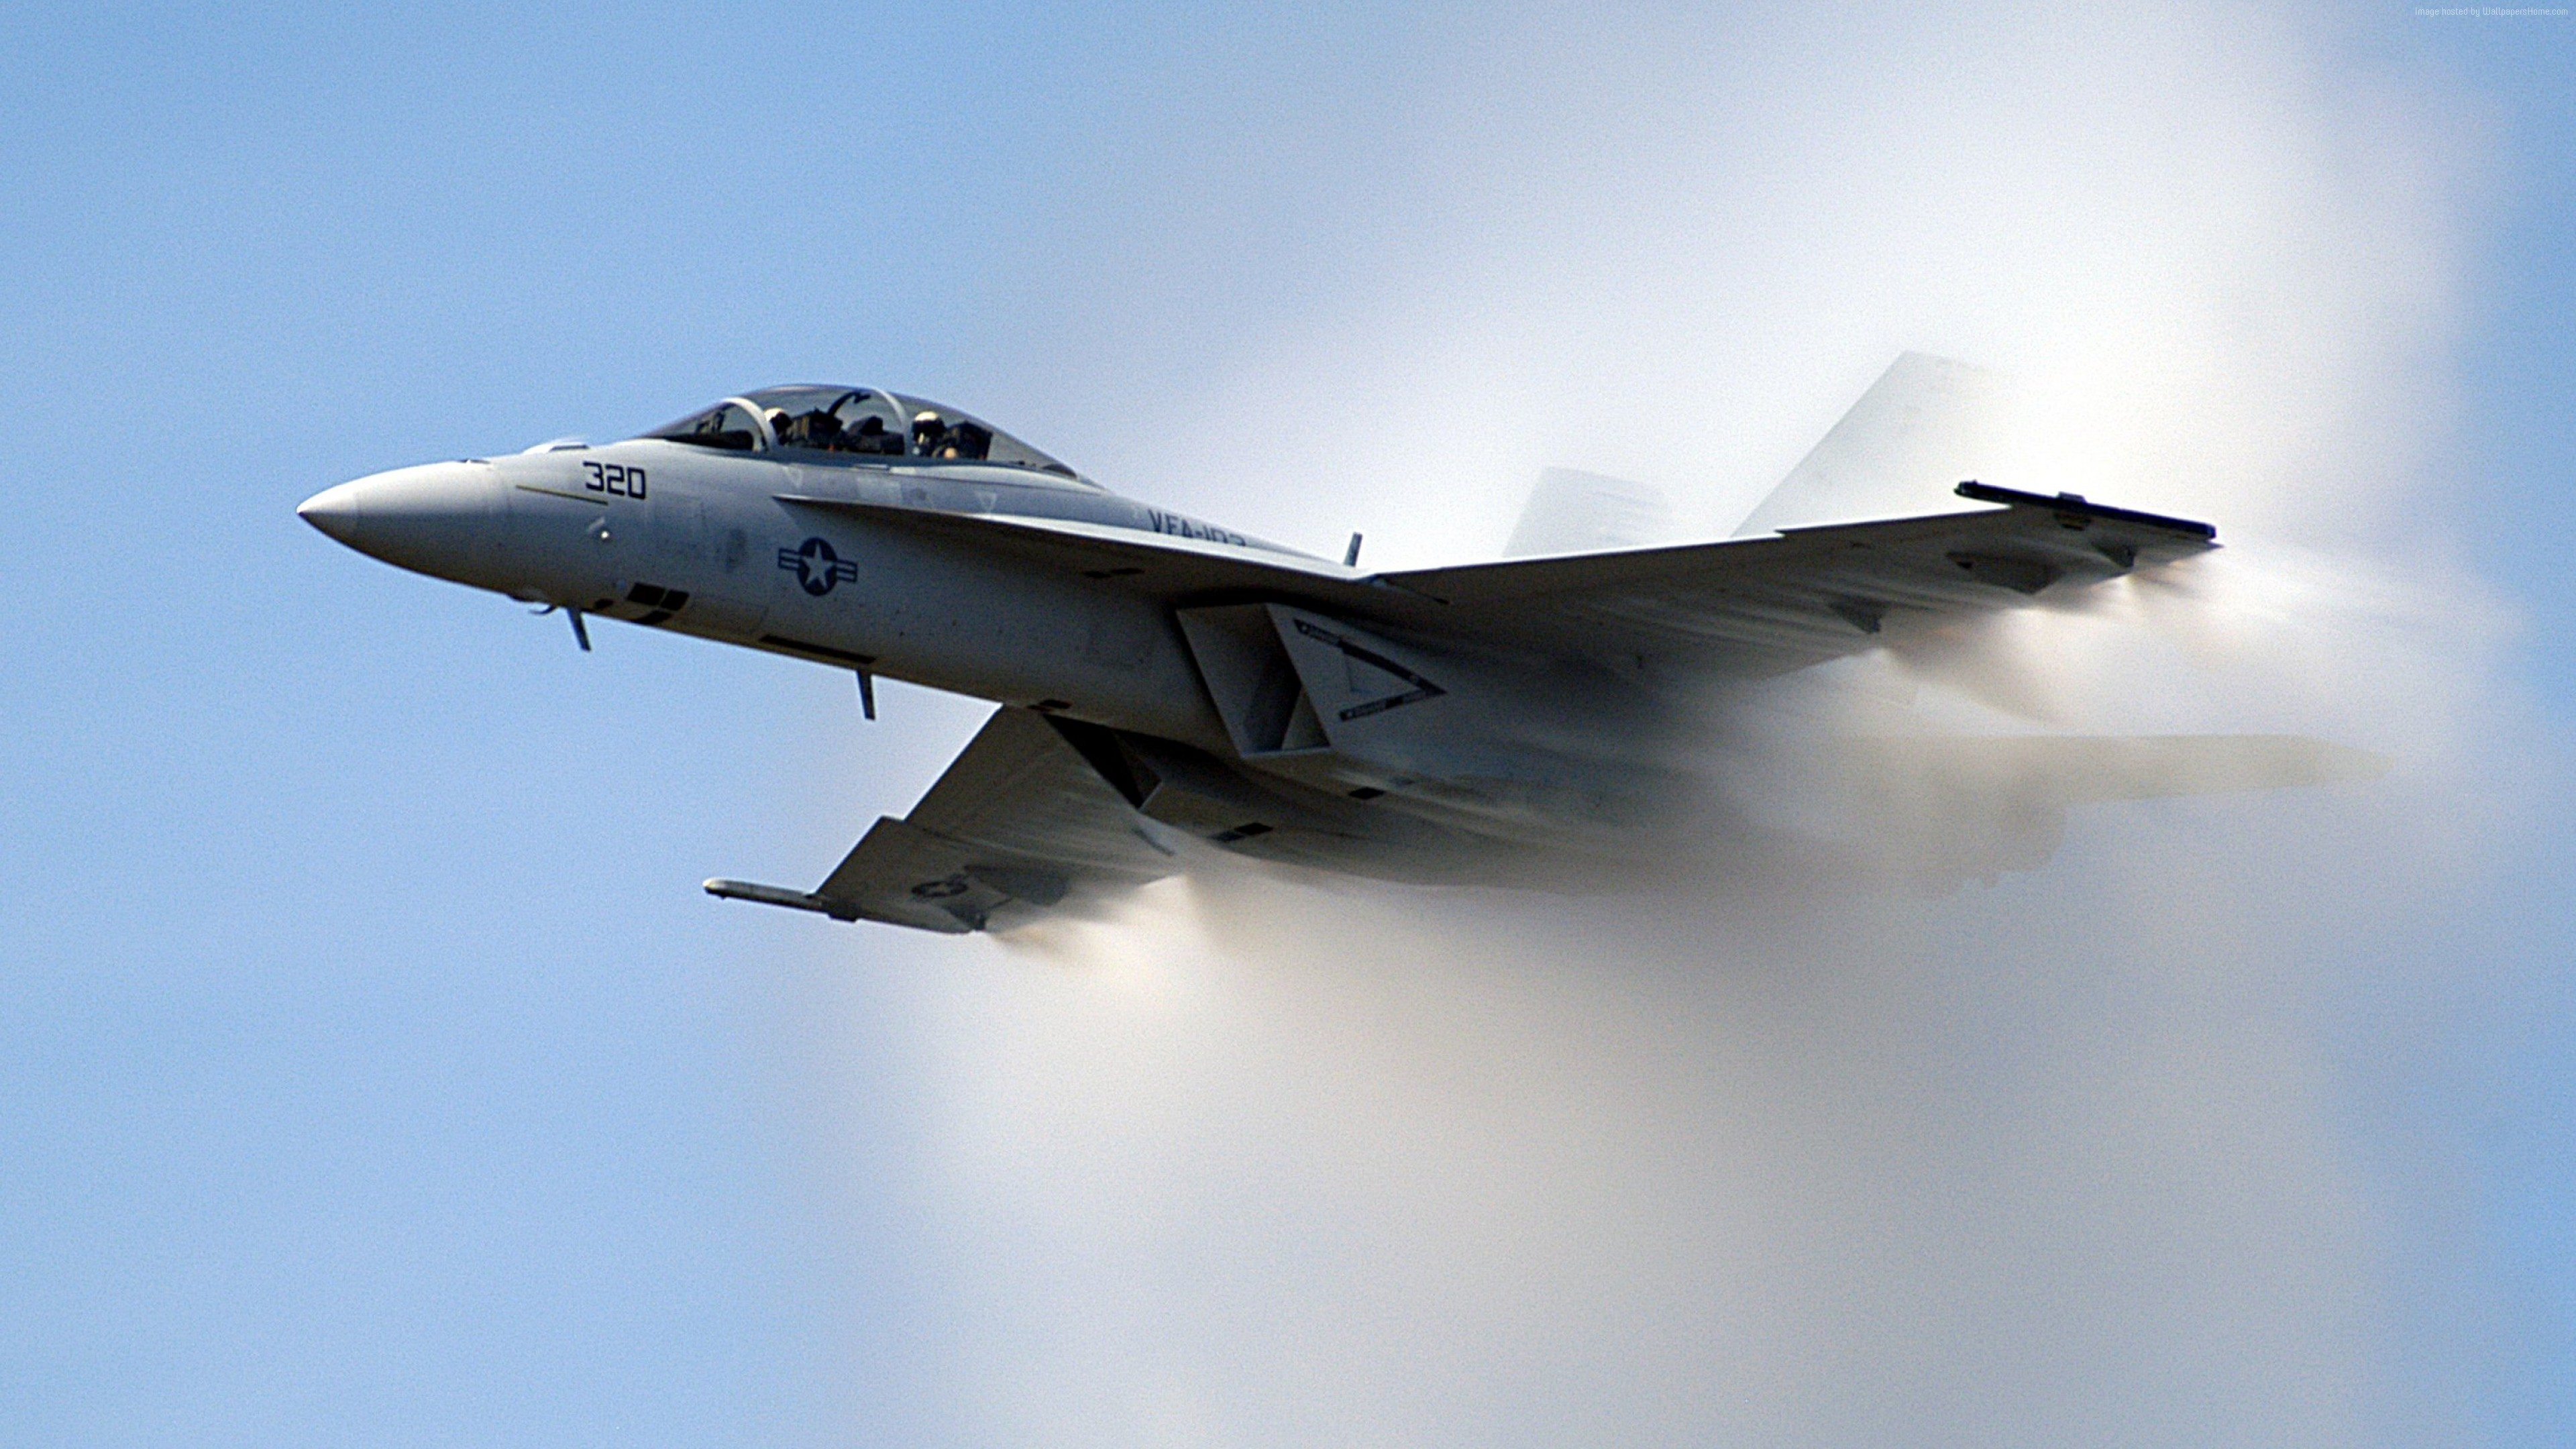 Wallpaper F-18, fighter aircraft, U.S. Airforce, Military